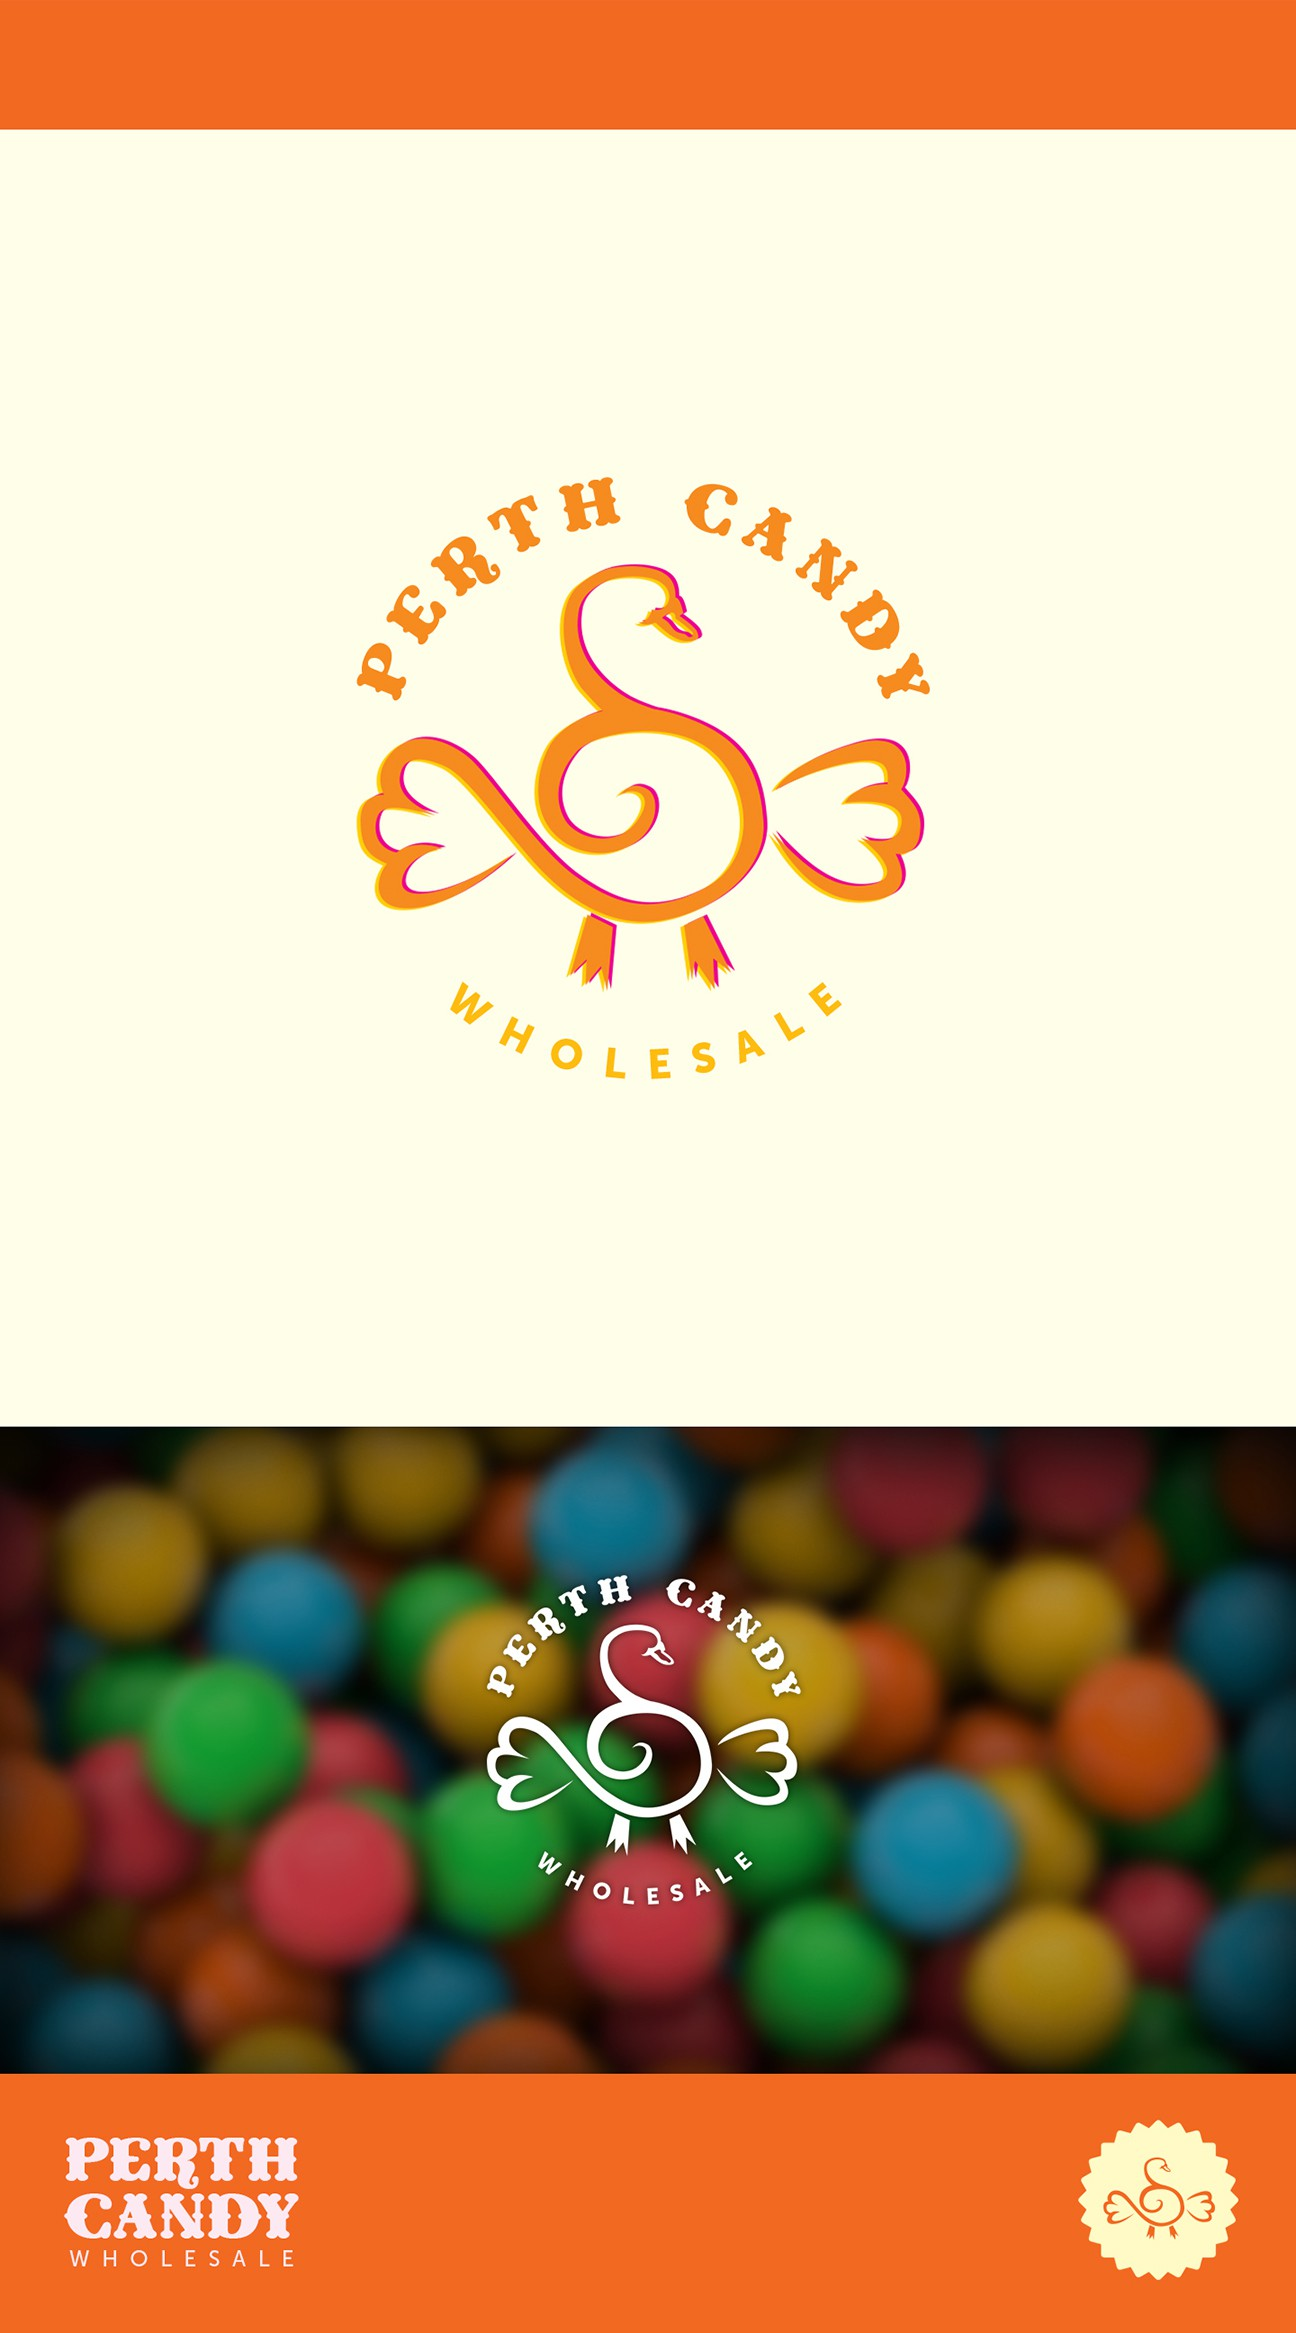 a SWEET AS logo for a SWEET company *drool*